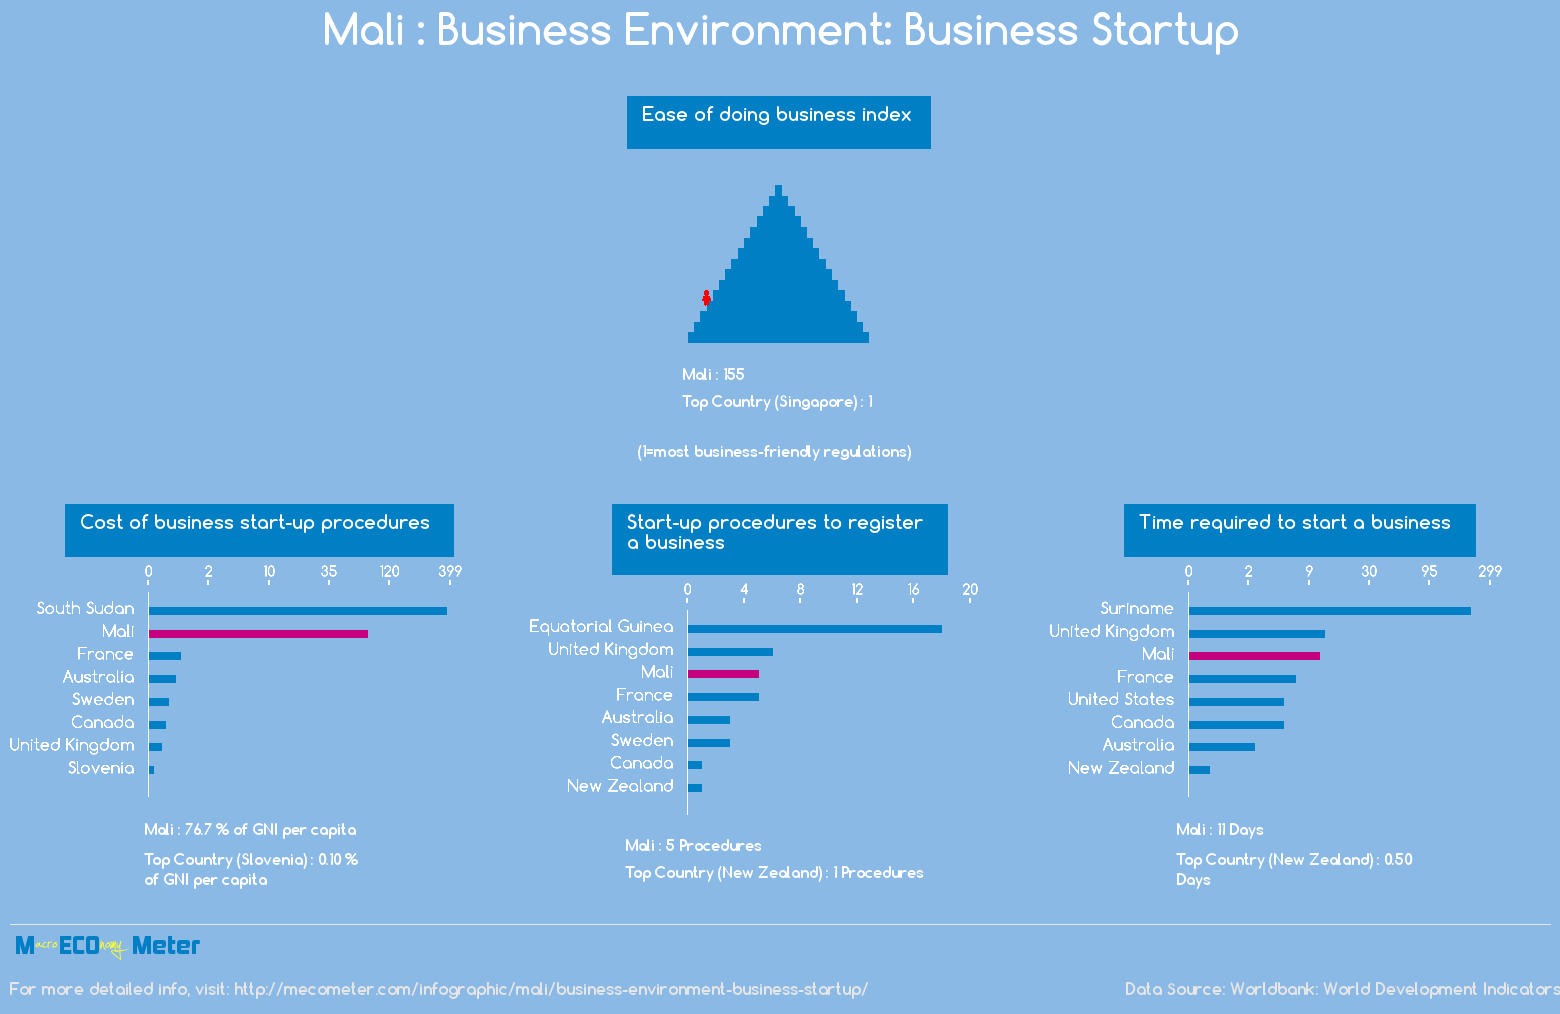 Mali : Business Environment: Business Startup